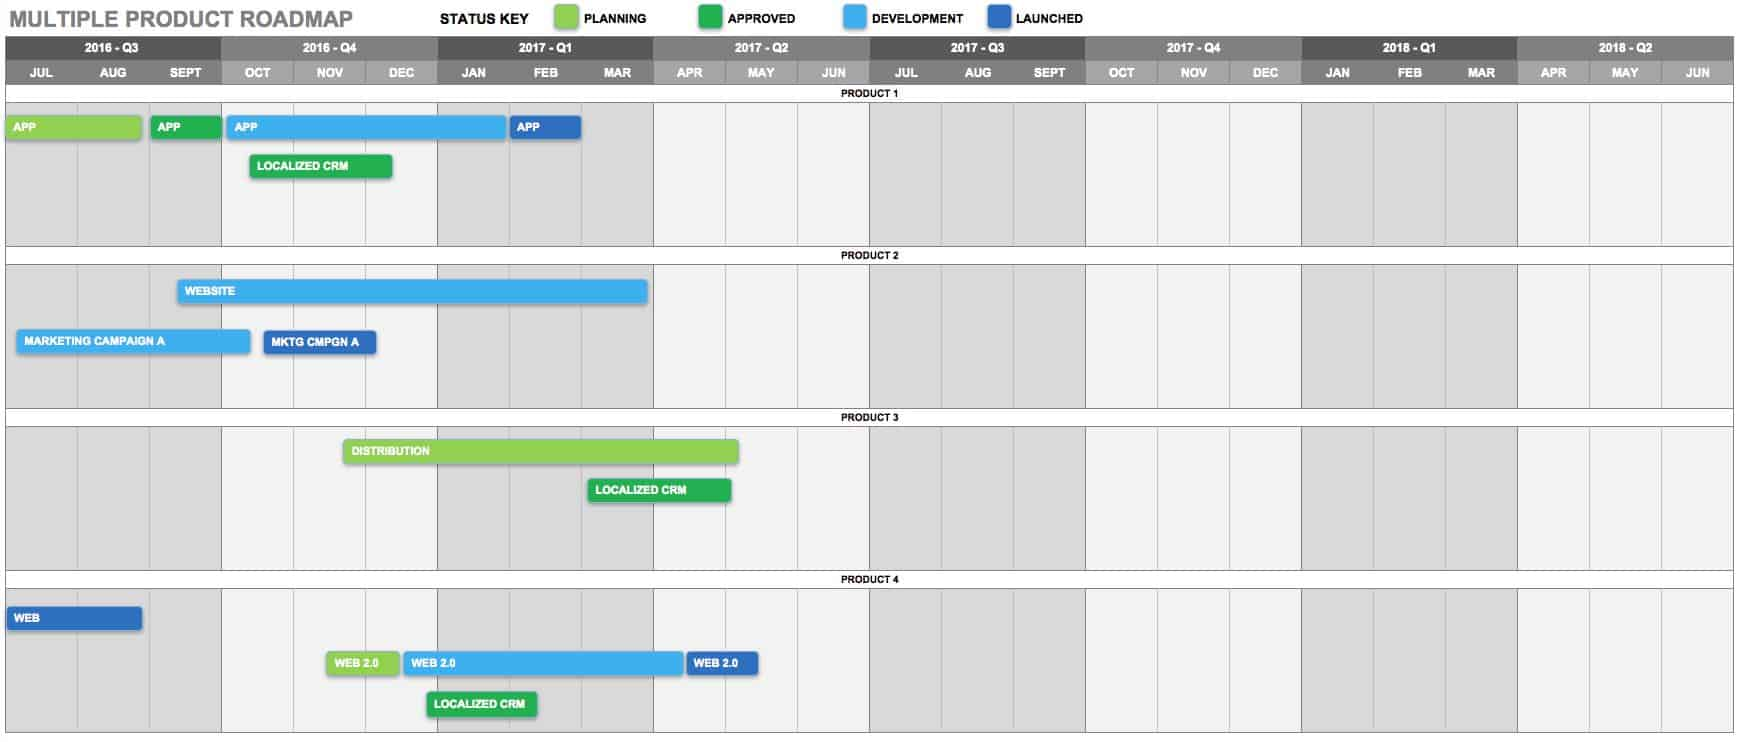 free product roadmap templates - smartsheet, Modern powerpoint